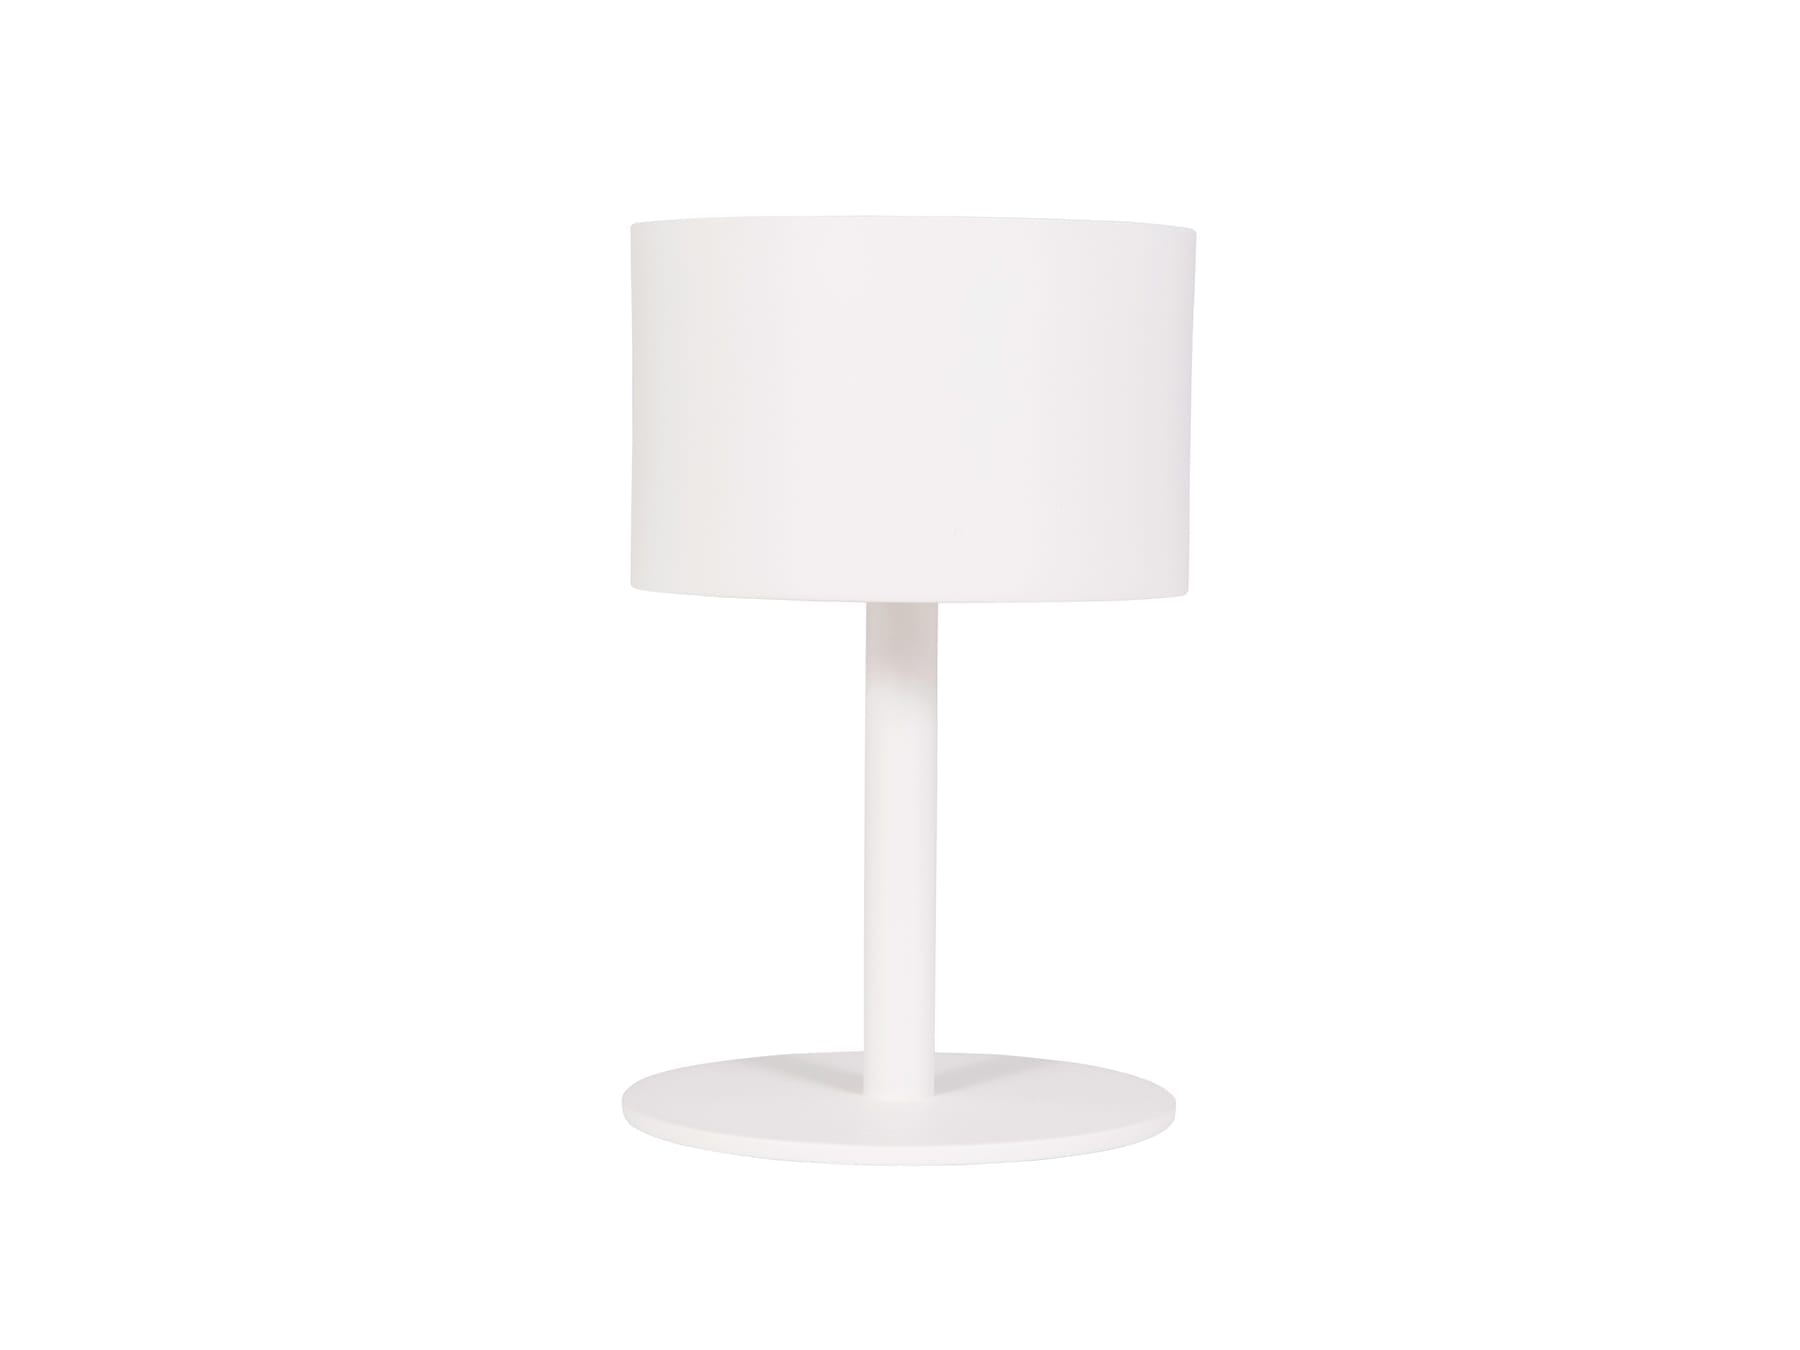 Maiori Pose 01 Solar Lamp available at McKenzie & Willis